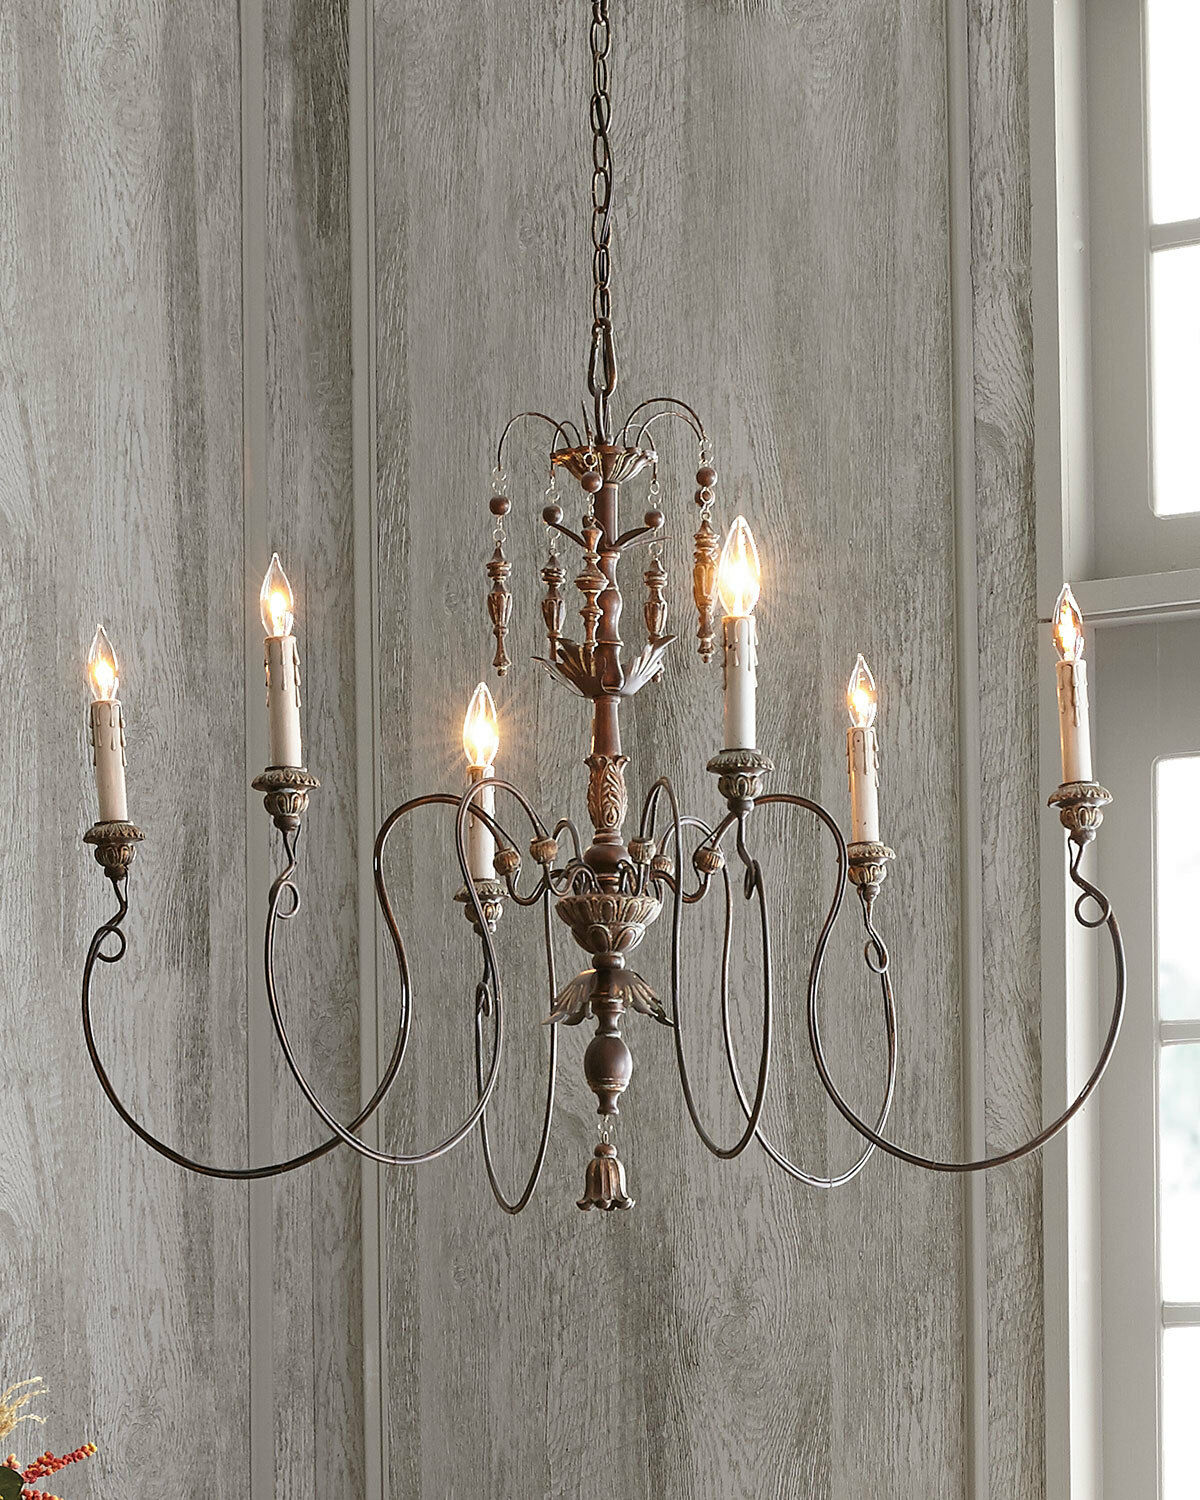 NEW Horchow French Hardware Farmhouse Vintage European Candle Chandelier  550